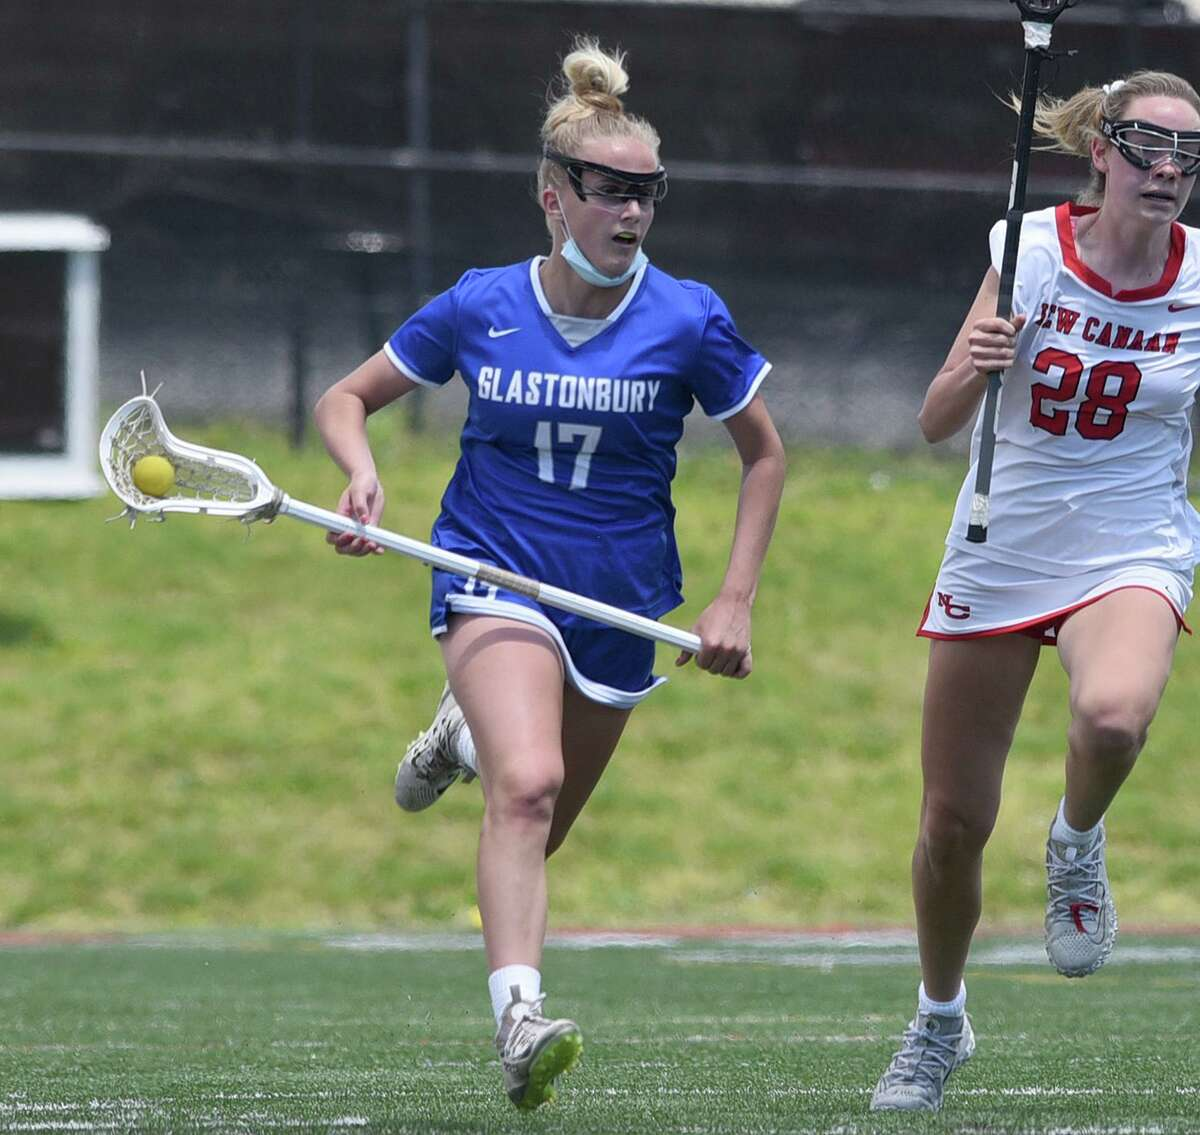 Glastonbury's Sam Forrest (17) races up the field against New Canaan during a girls lacrosse game at Dunning Field on Saturday, May 15, 2021.